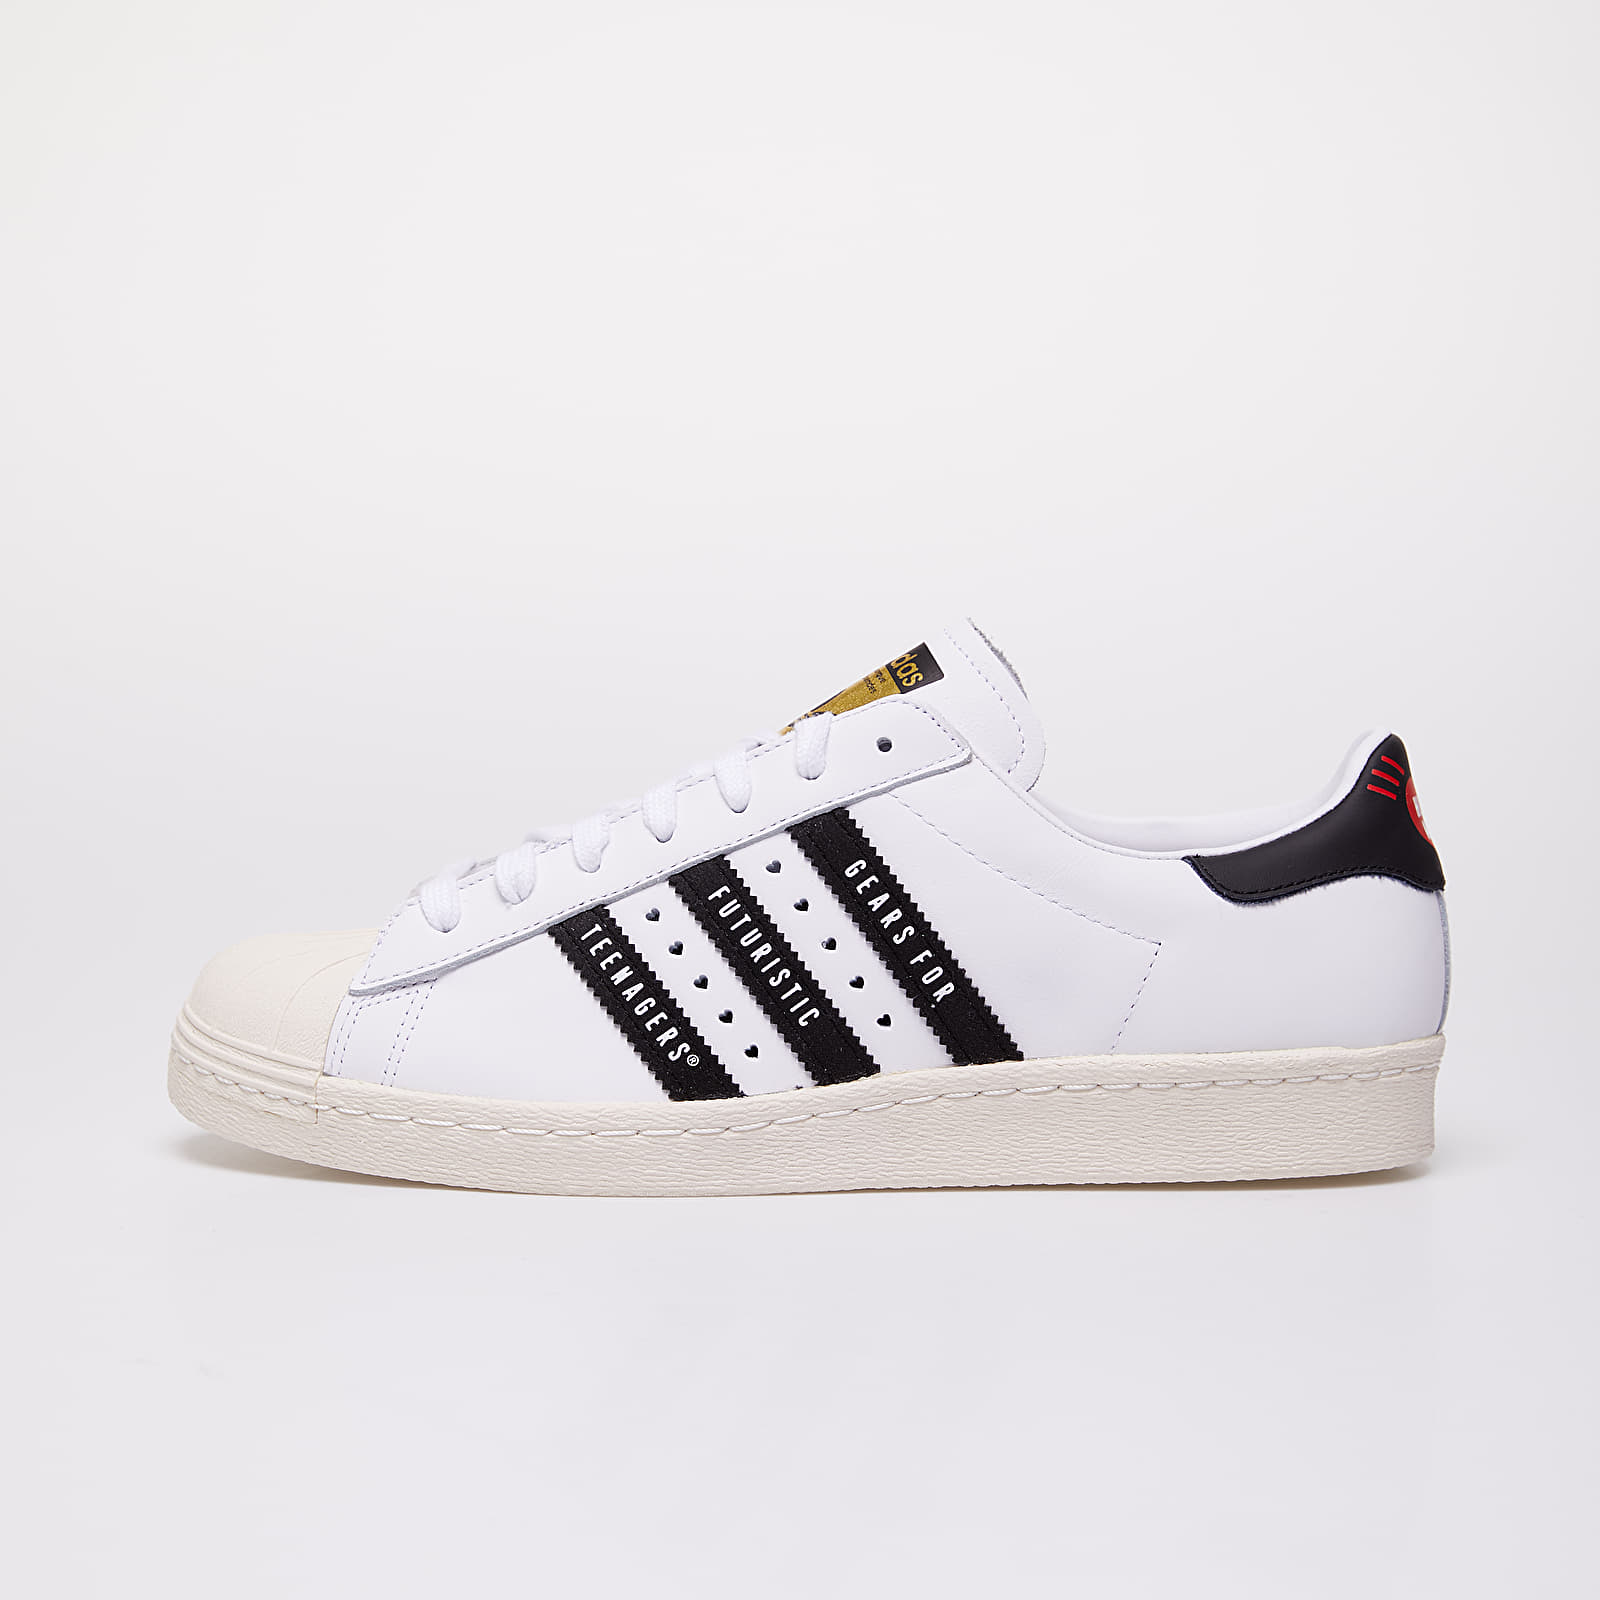 adidas x Pharrell Williams Superstar 80s Human Made